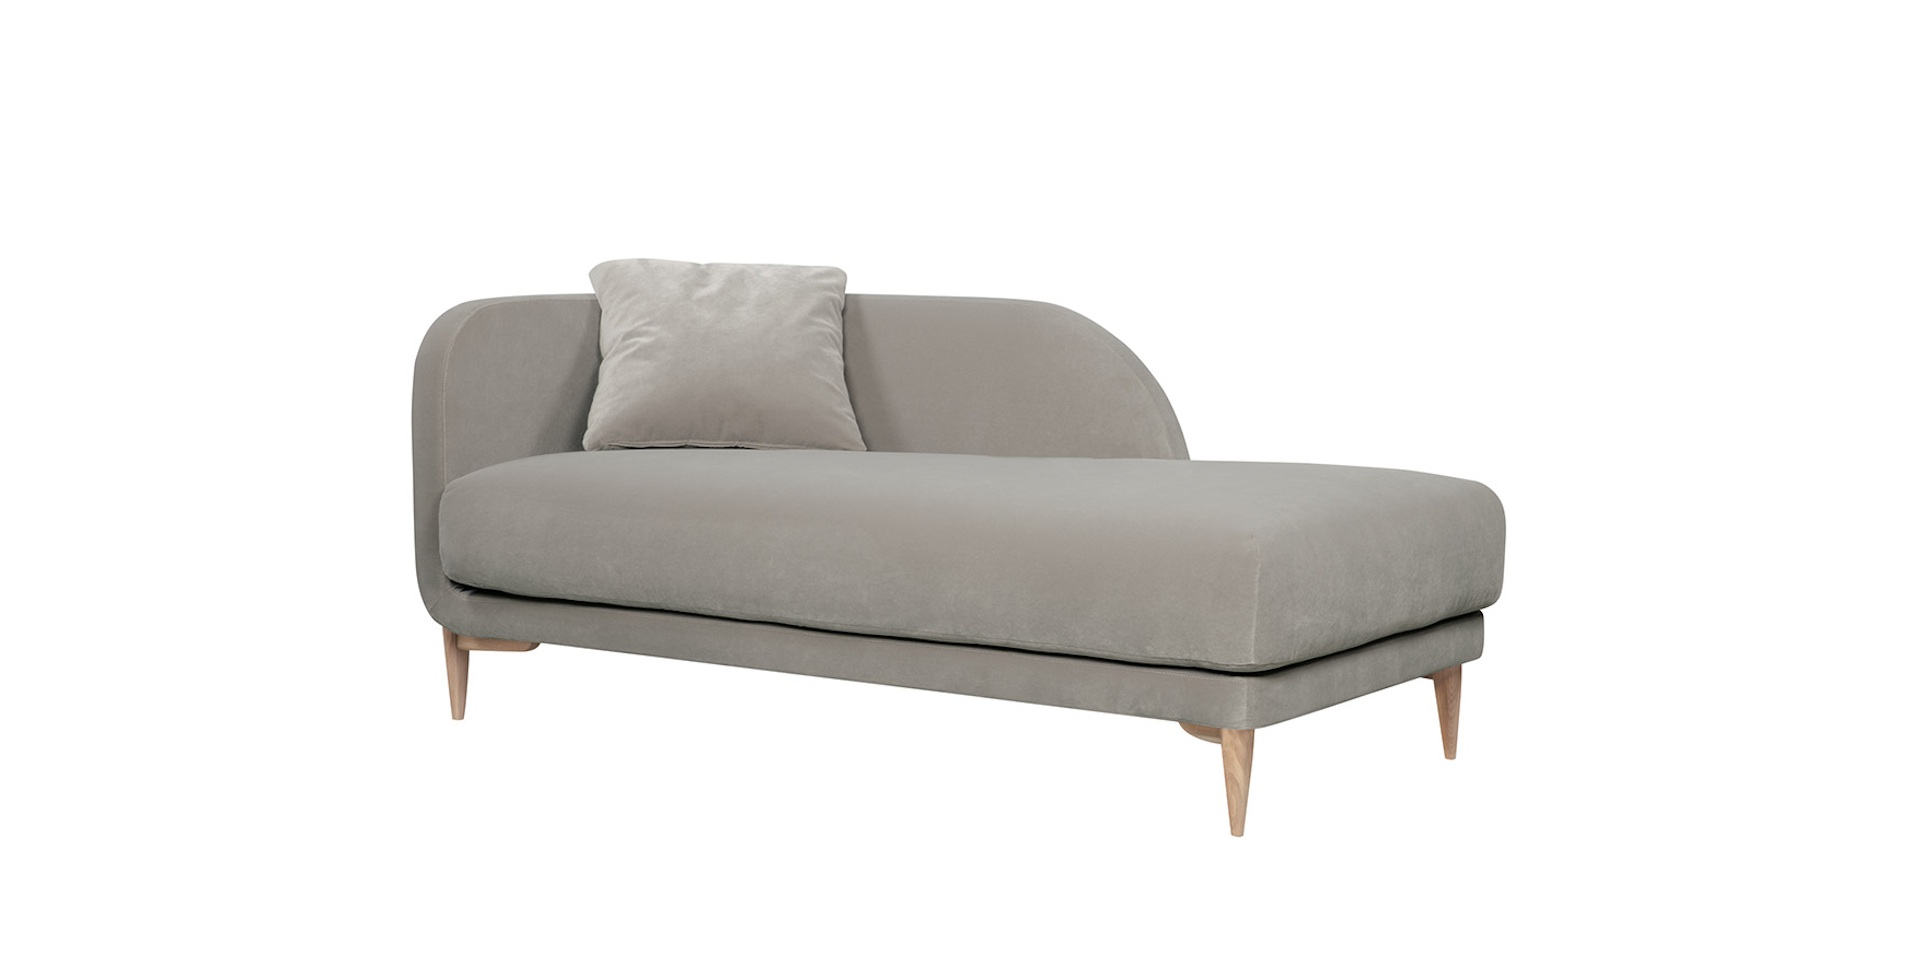 JENNY_chaiselongue_classic_velvet4_light_grey_2